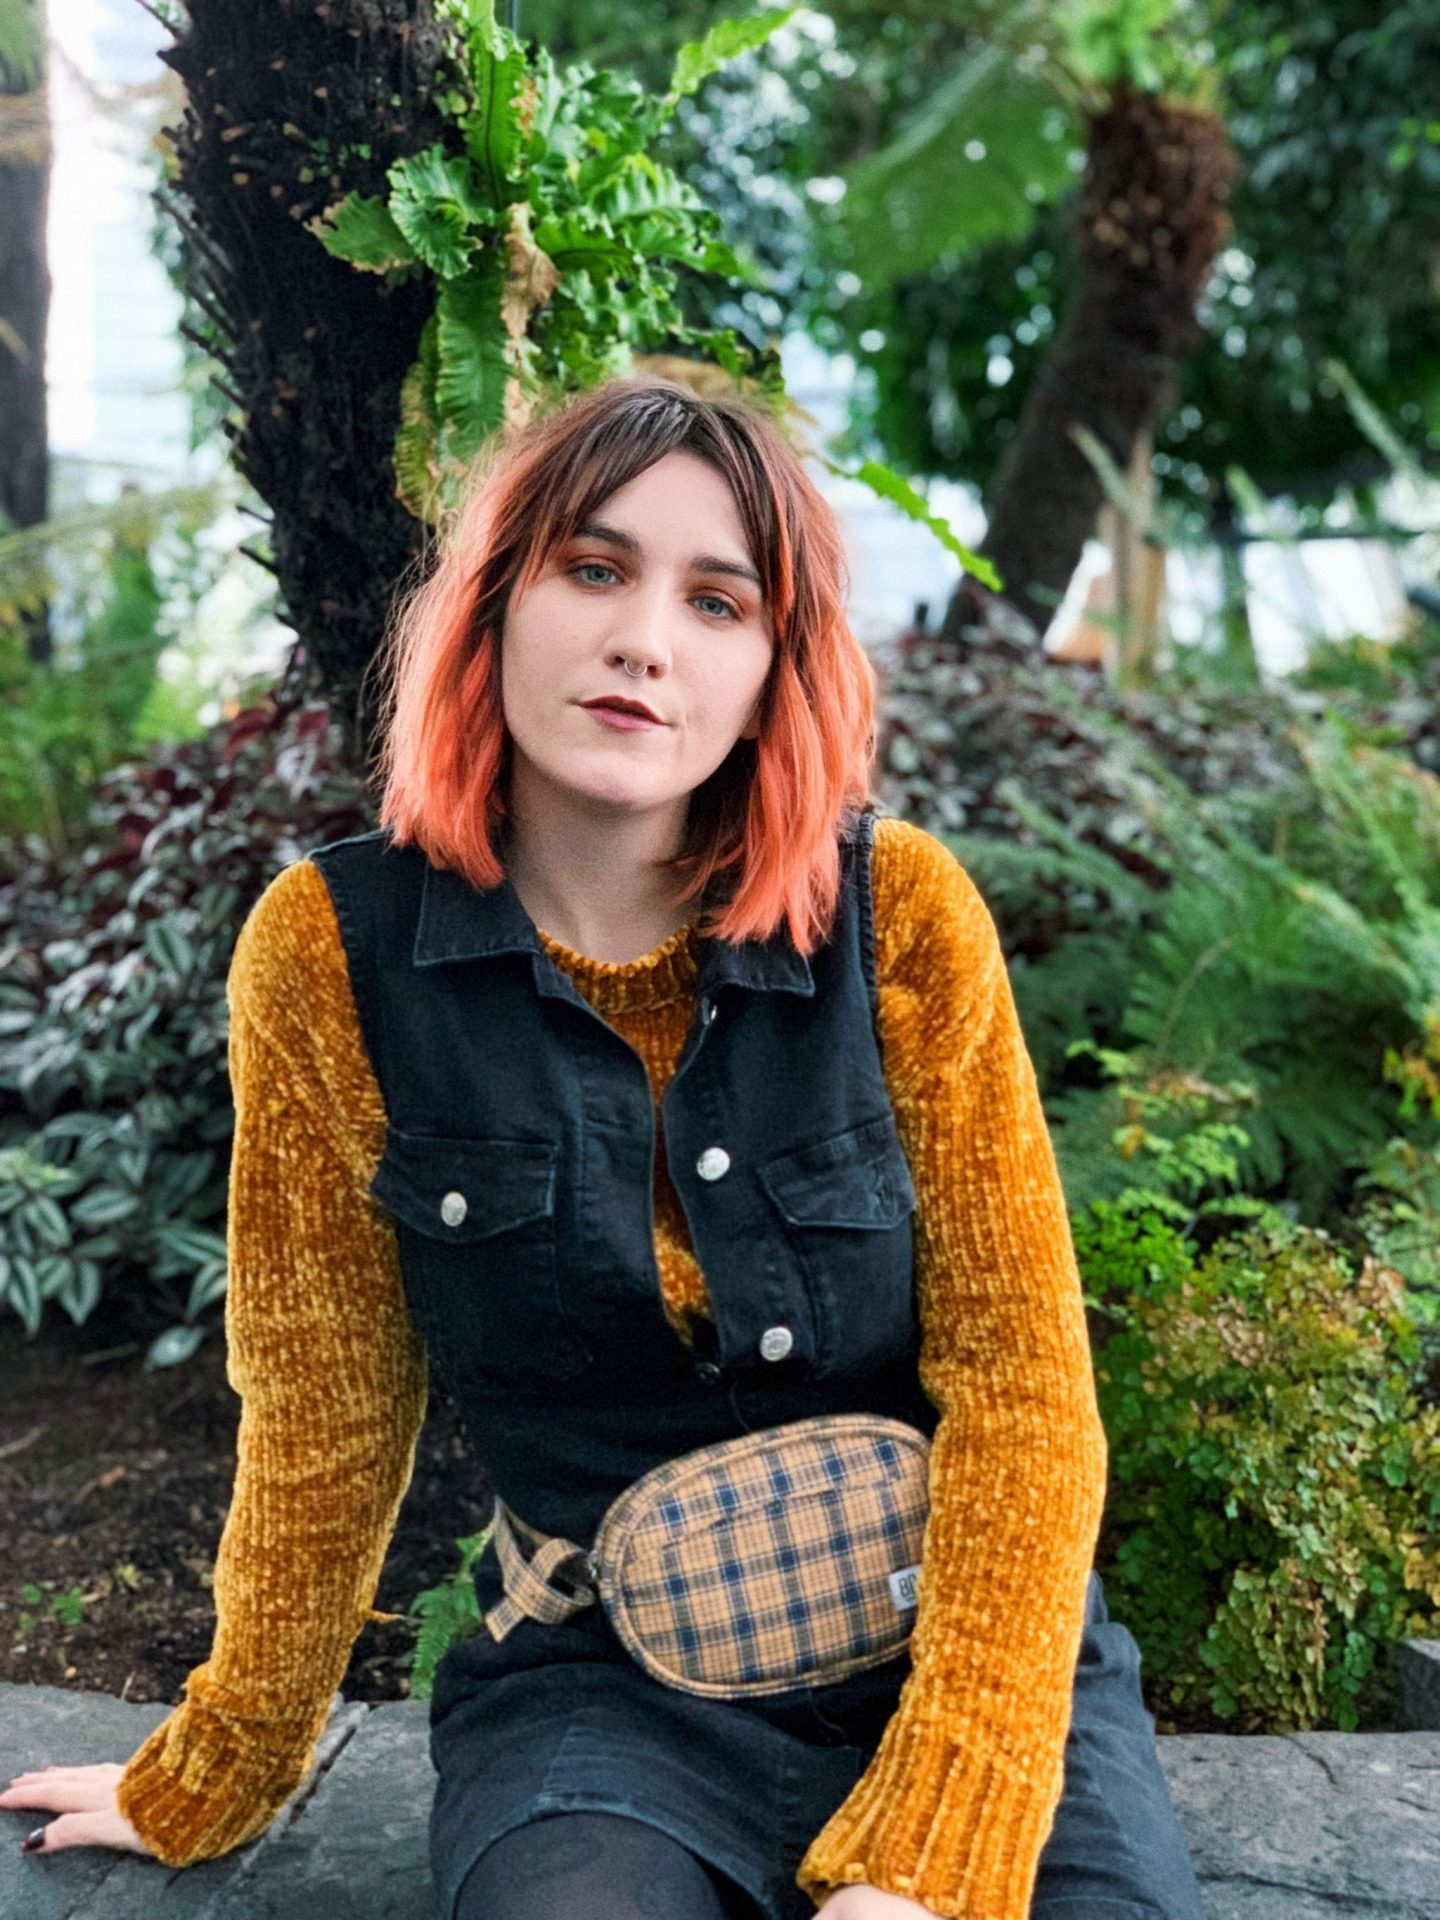 Slow Styling VS Fast Fashion; What's The Big Issue? - outfit closeup in sky garden